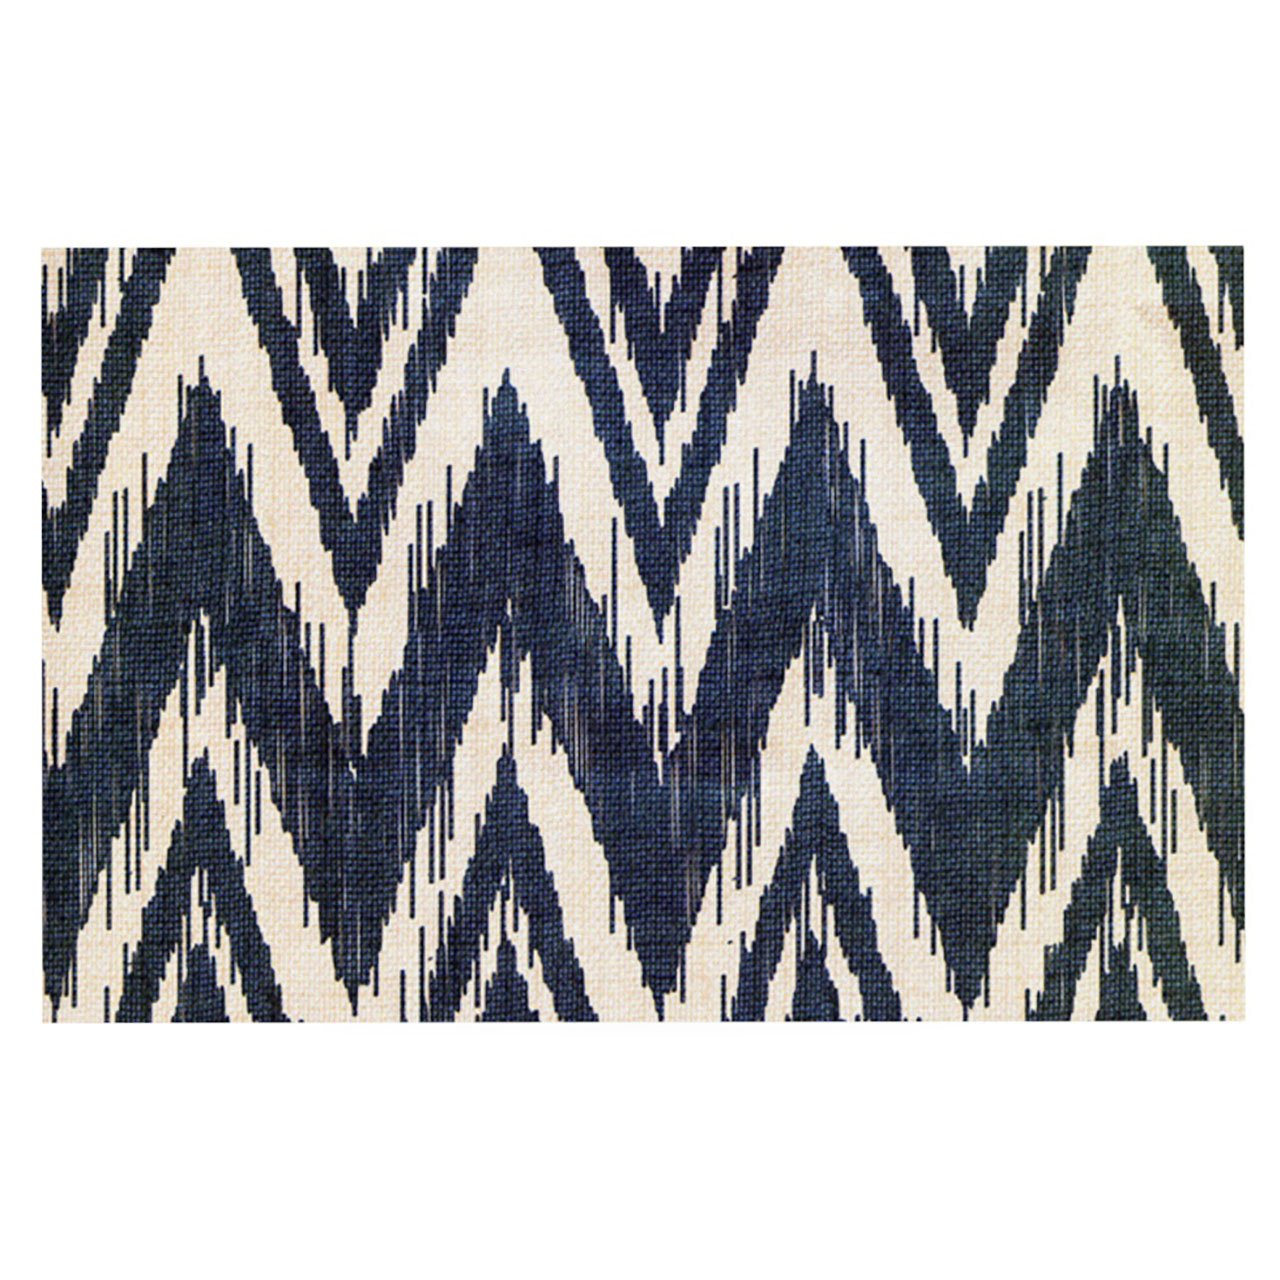 Kess InHouse  Heidi Jennings ''Tribal Chevron Black'' Pet Bowl Placemat for Dog and Cat Feeding Mat, 18-Inch by 13-Inch